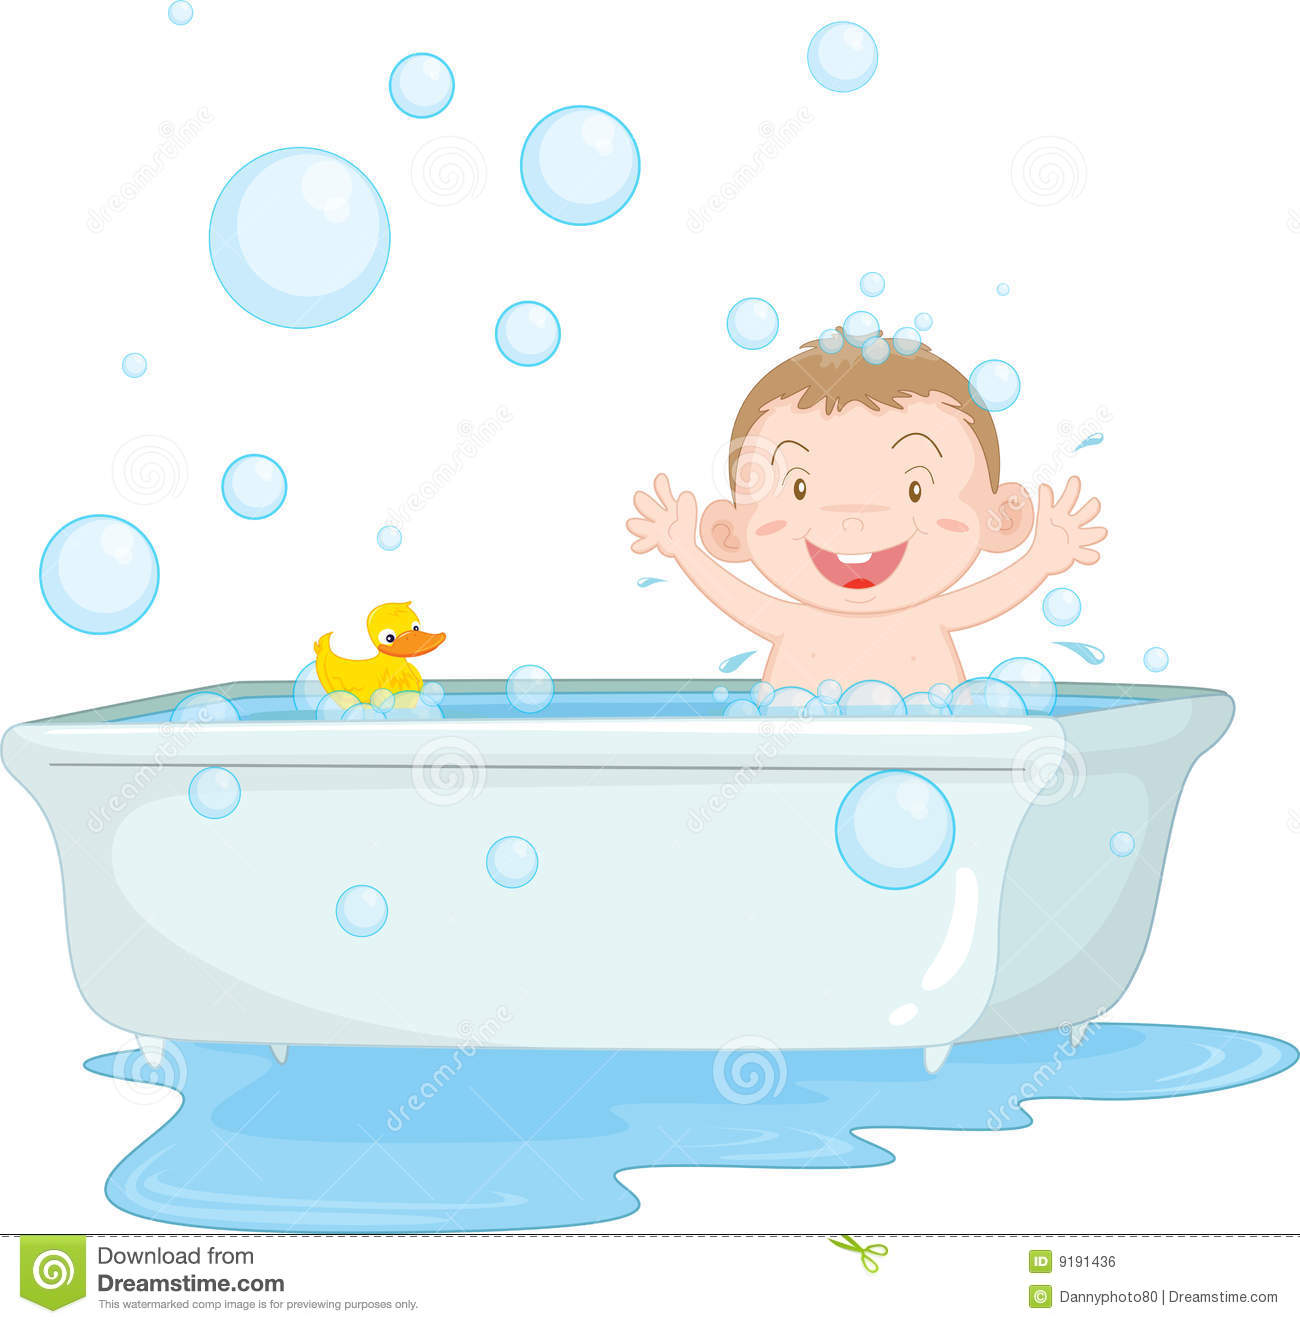 Bath Time Royalty Free Stock Image - Image: 9191436